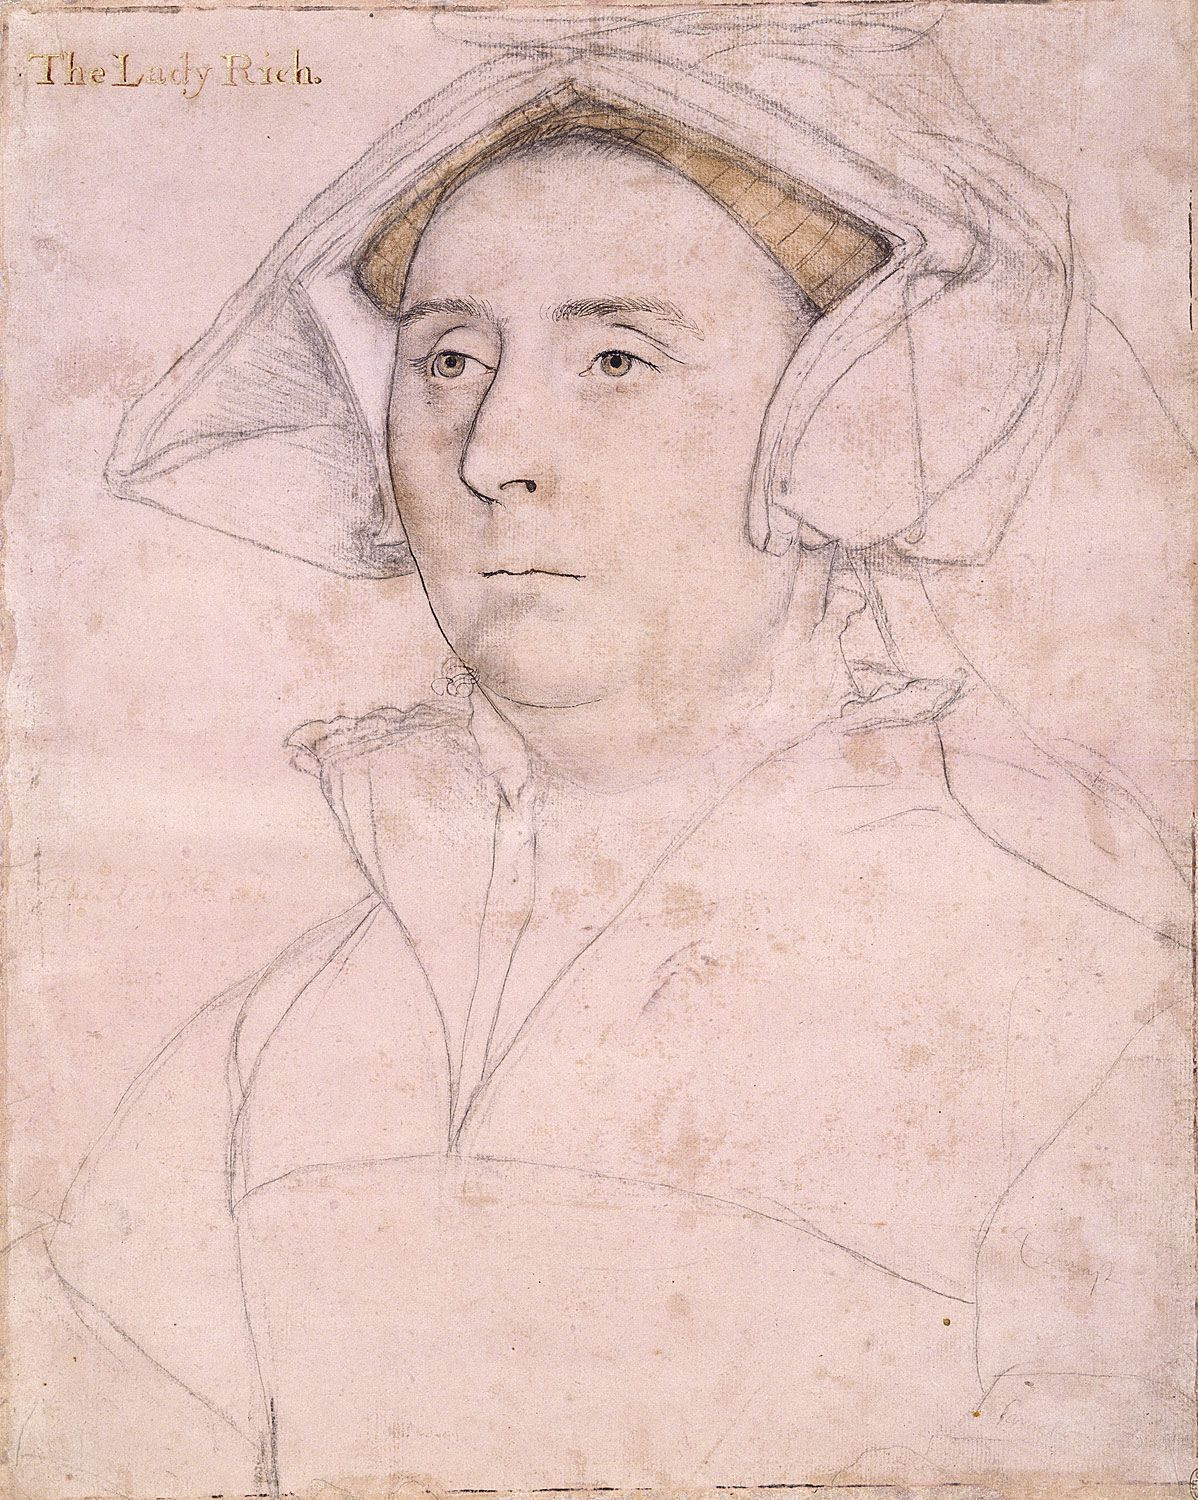 Portrait of Elizabeth, Lady Rich. c.1535-40